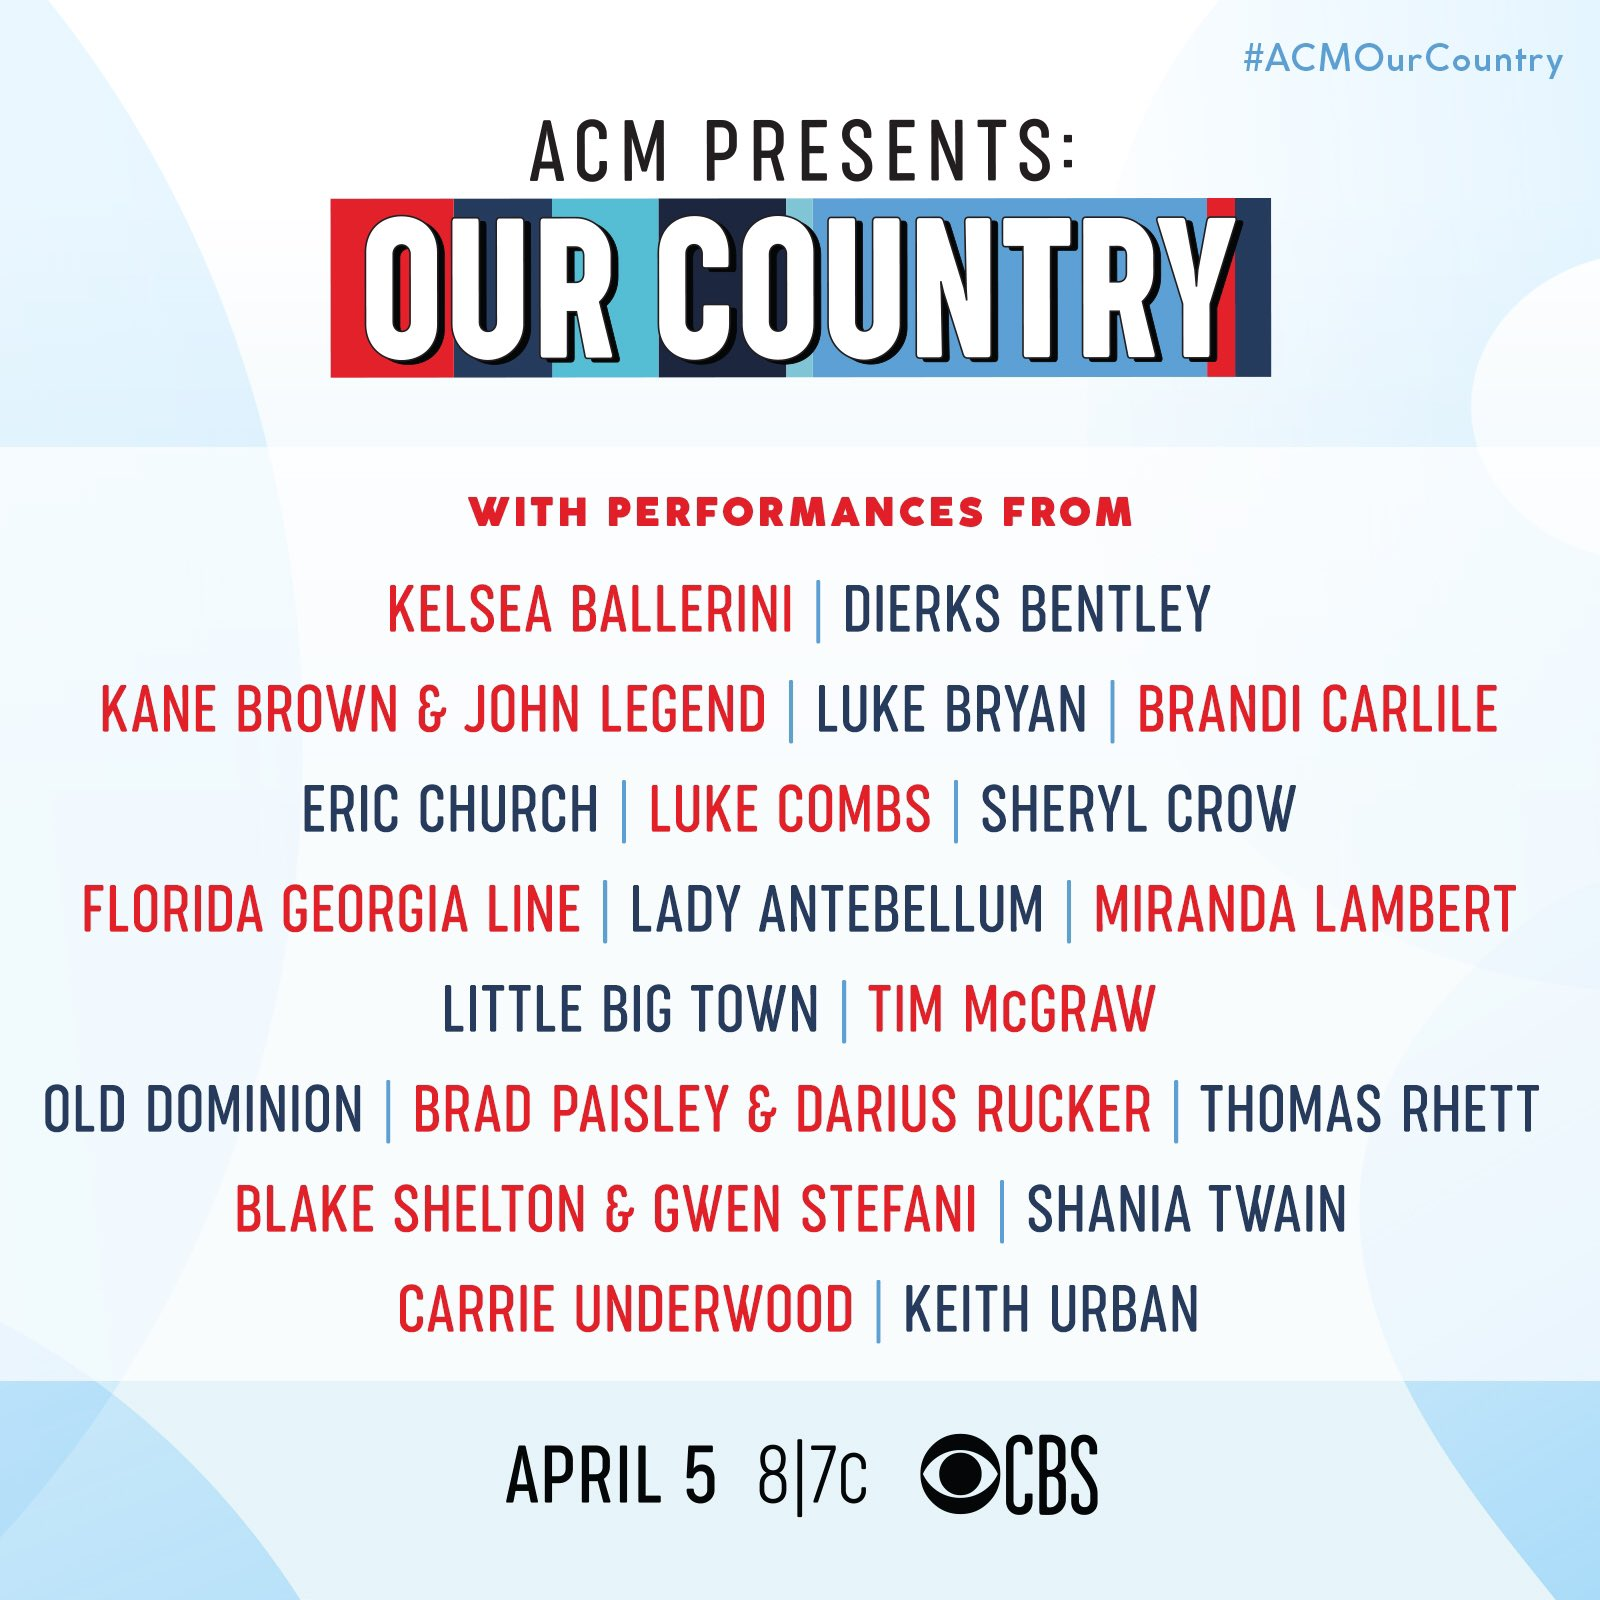 acmsourcountry